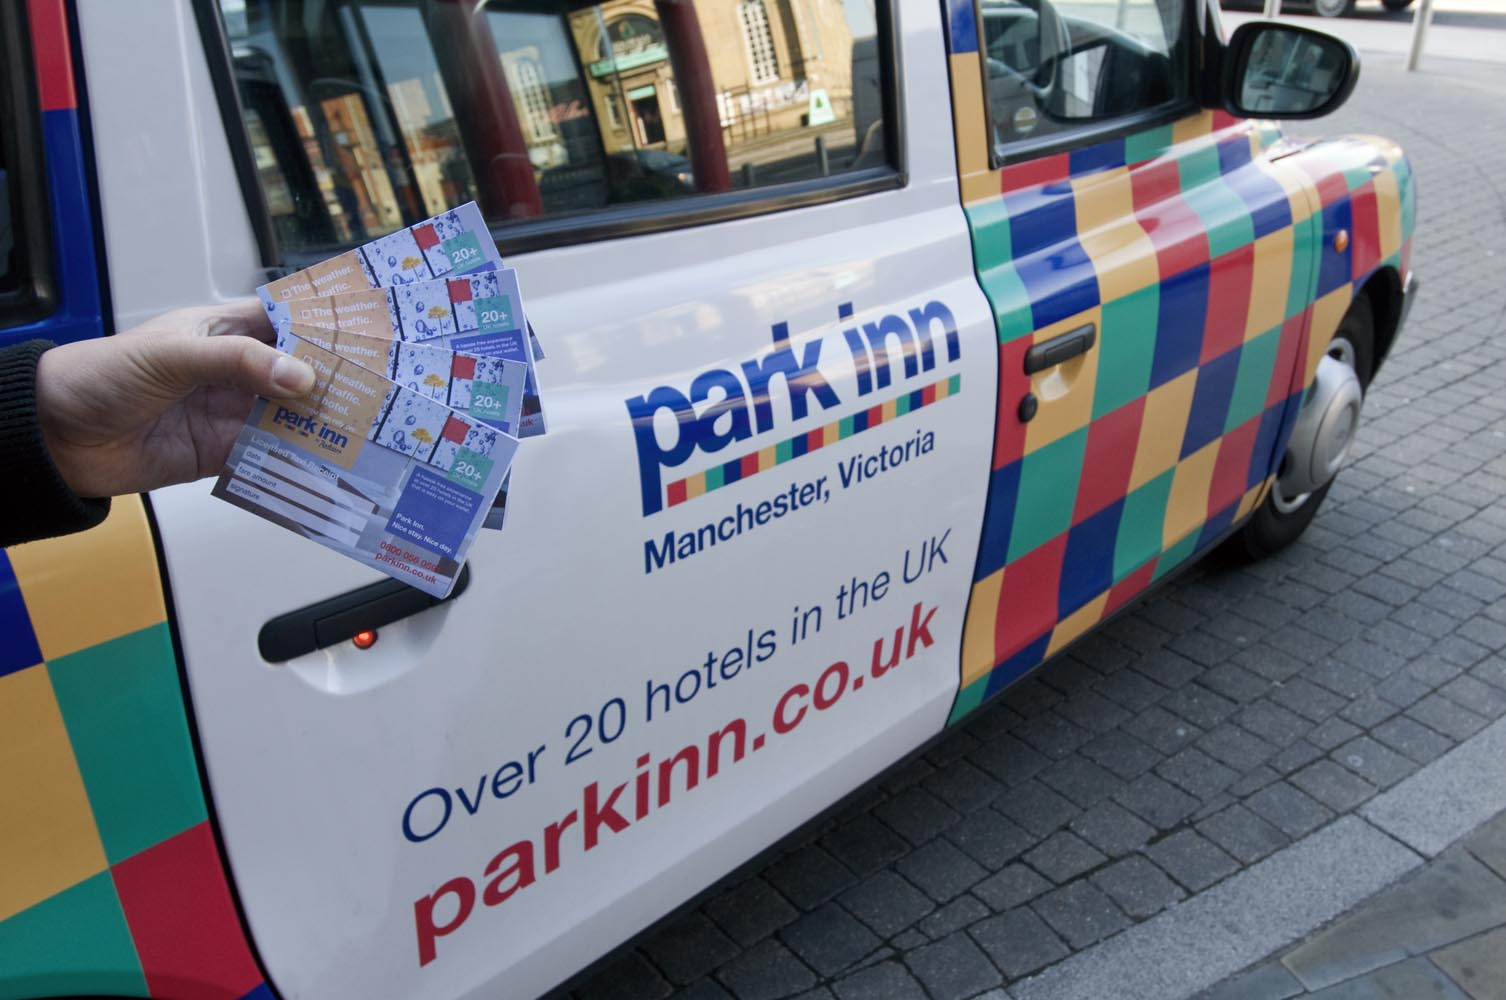 2011 Ubiquitous taxi advertising campaign for Park Inn - Over 20 Hotels in the UK